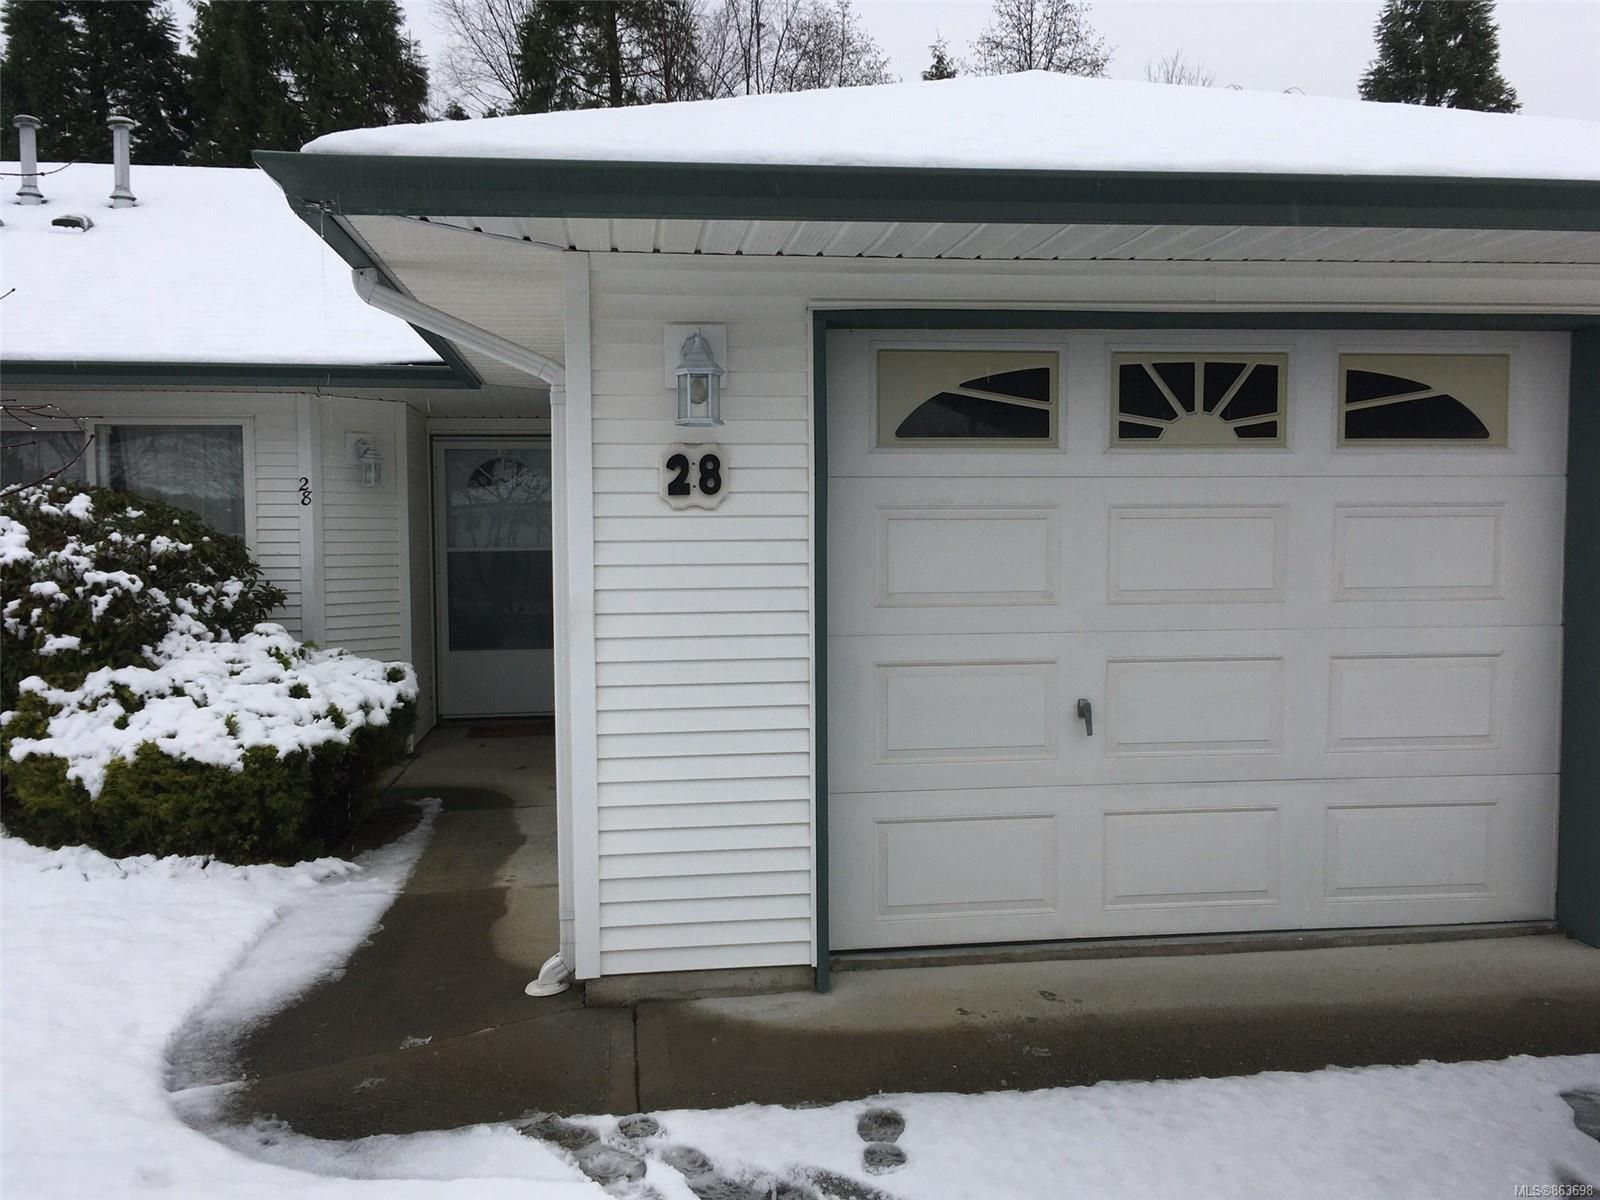 Main Photo: 28 396 Harrogate Rd in : CR Willow Point Condo for sale (Campbell River)  : MLS®# 863698